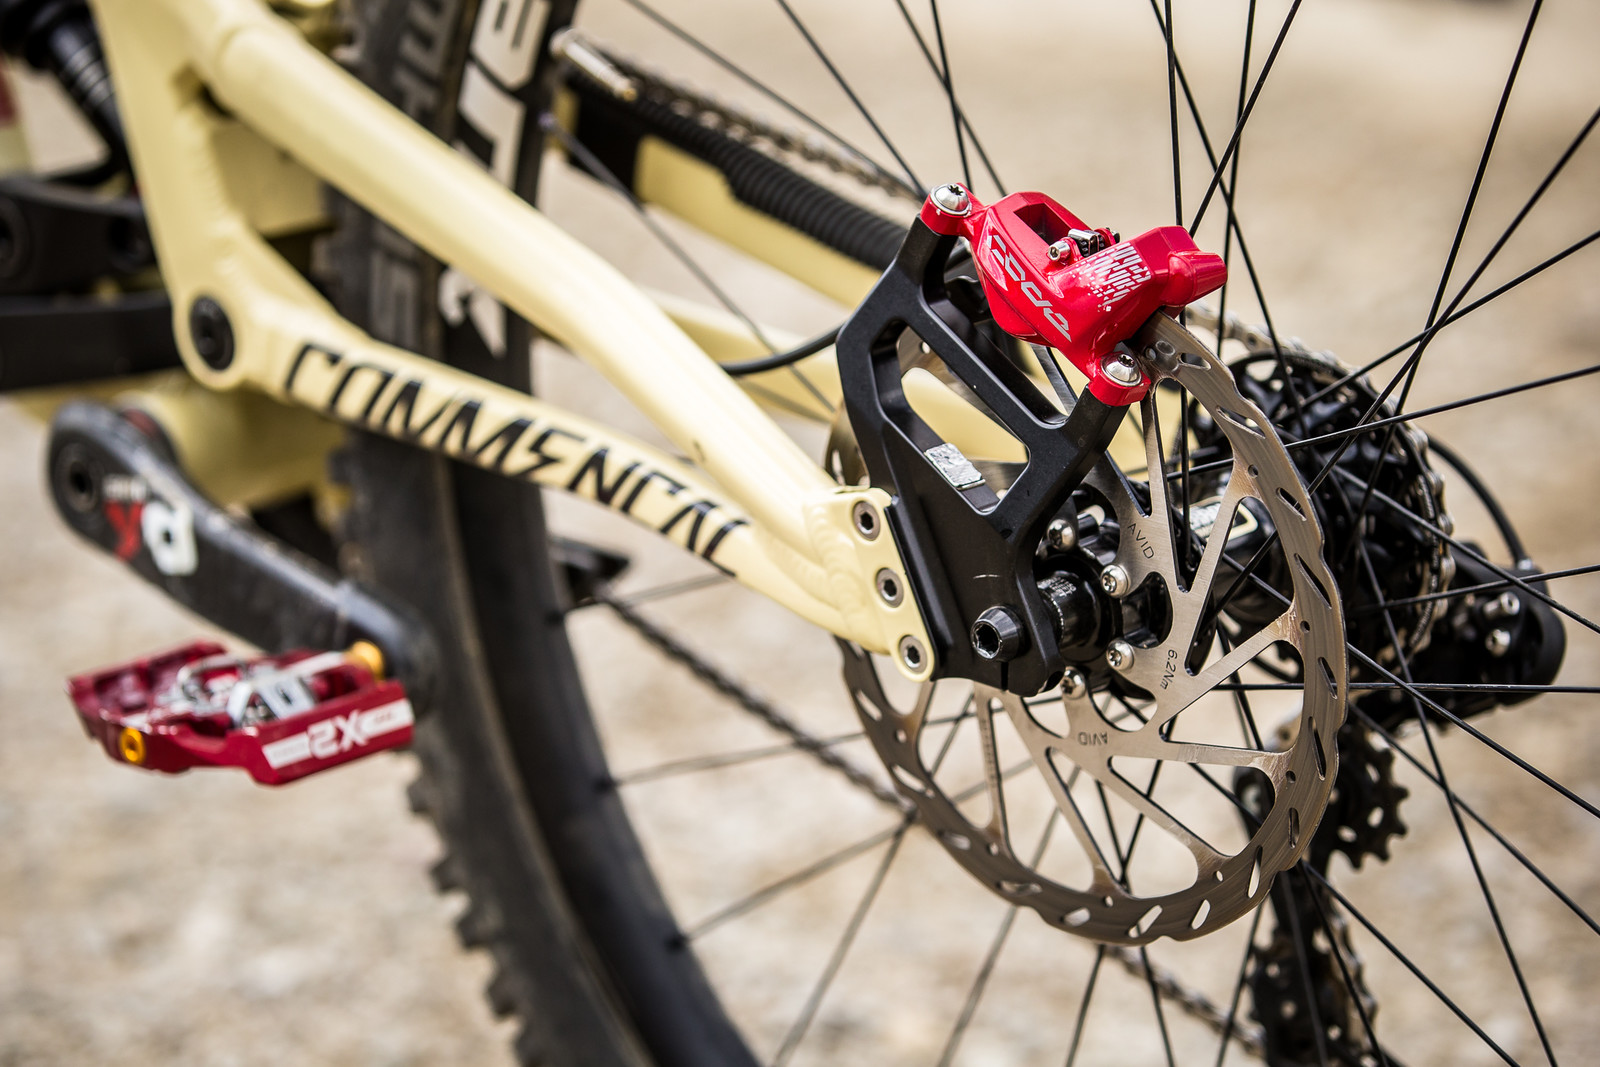 SRAM CODE Brakes - WINNING BIKE - Amaury Pierron's Commencal Supreme DH 29 - Mountain Biking Pictures - Vital MTB